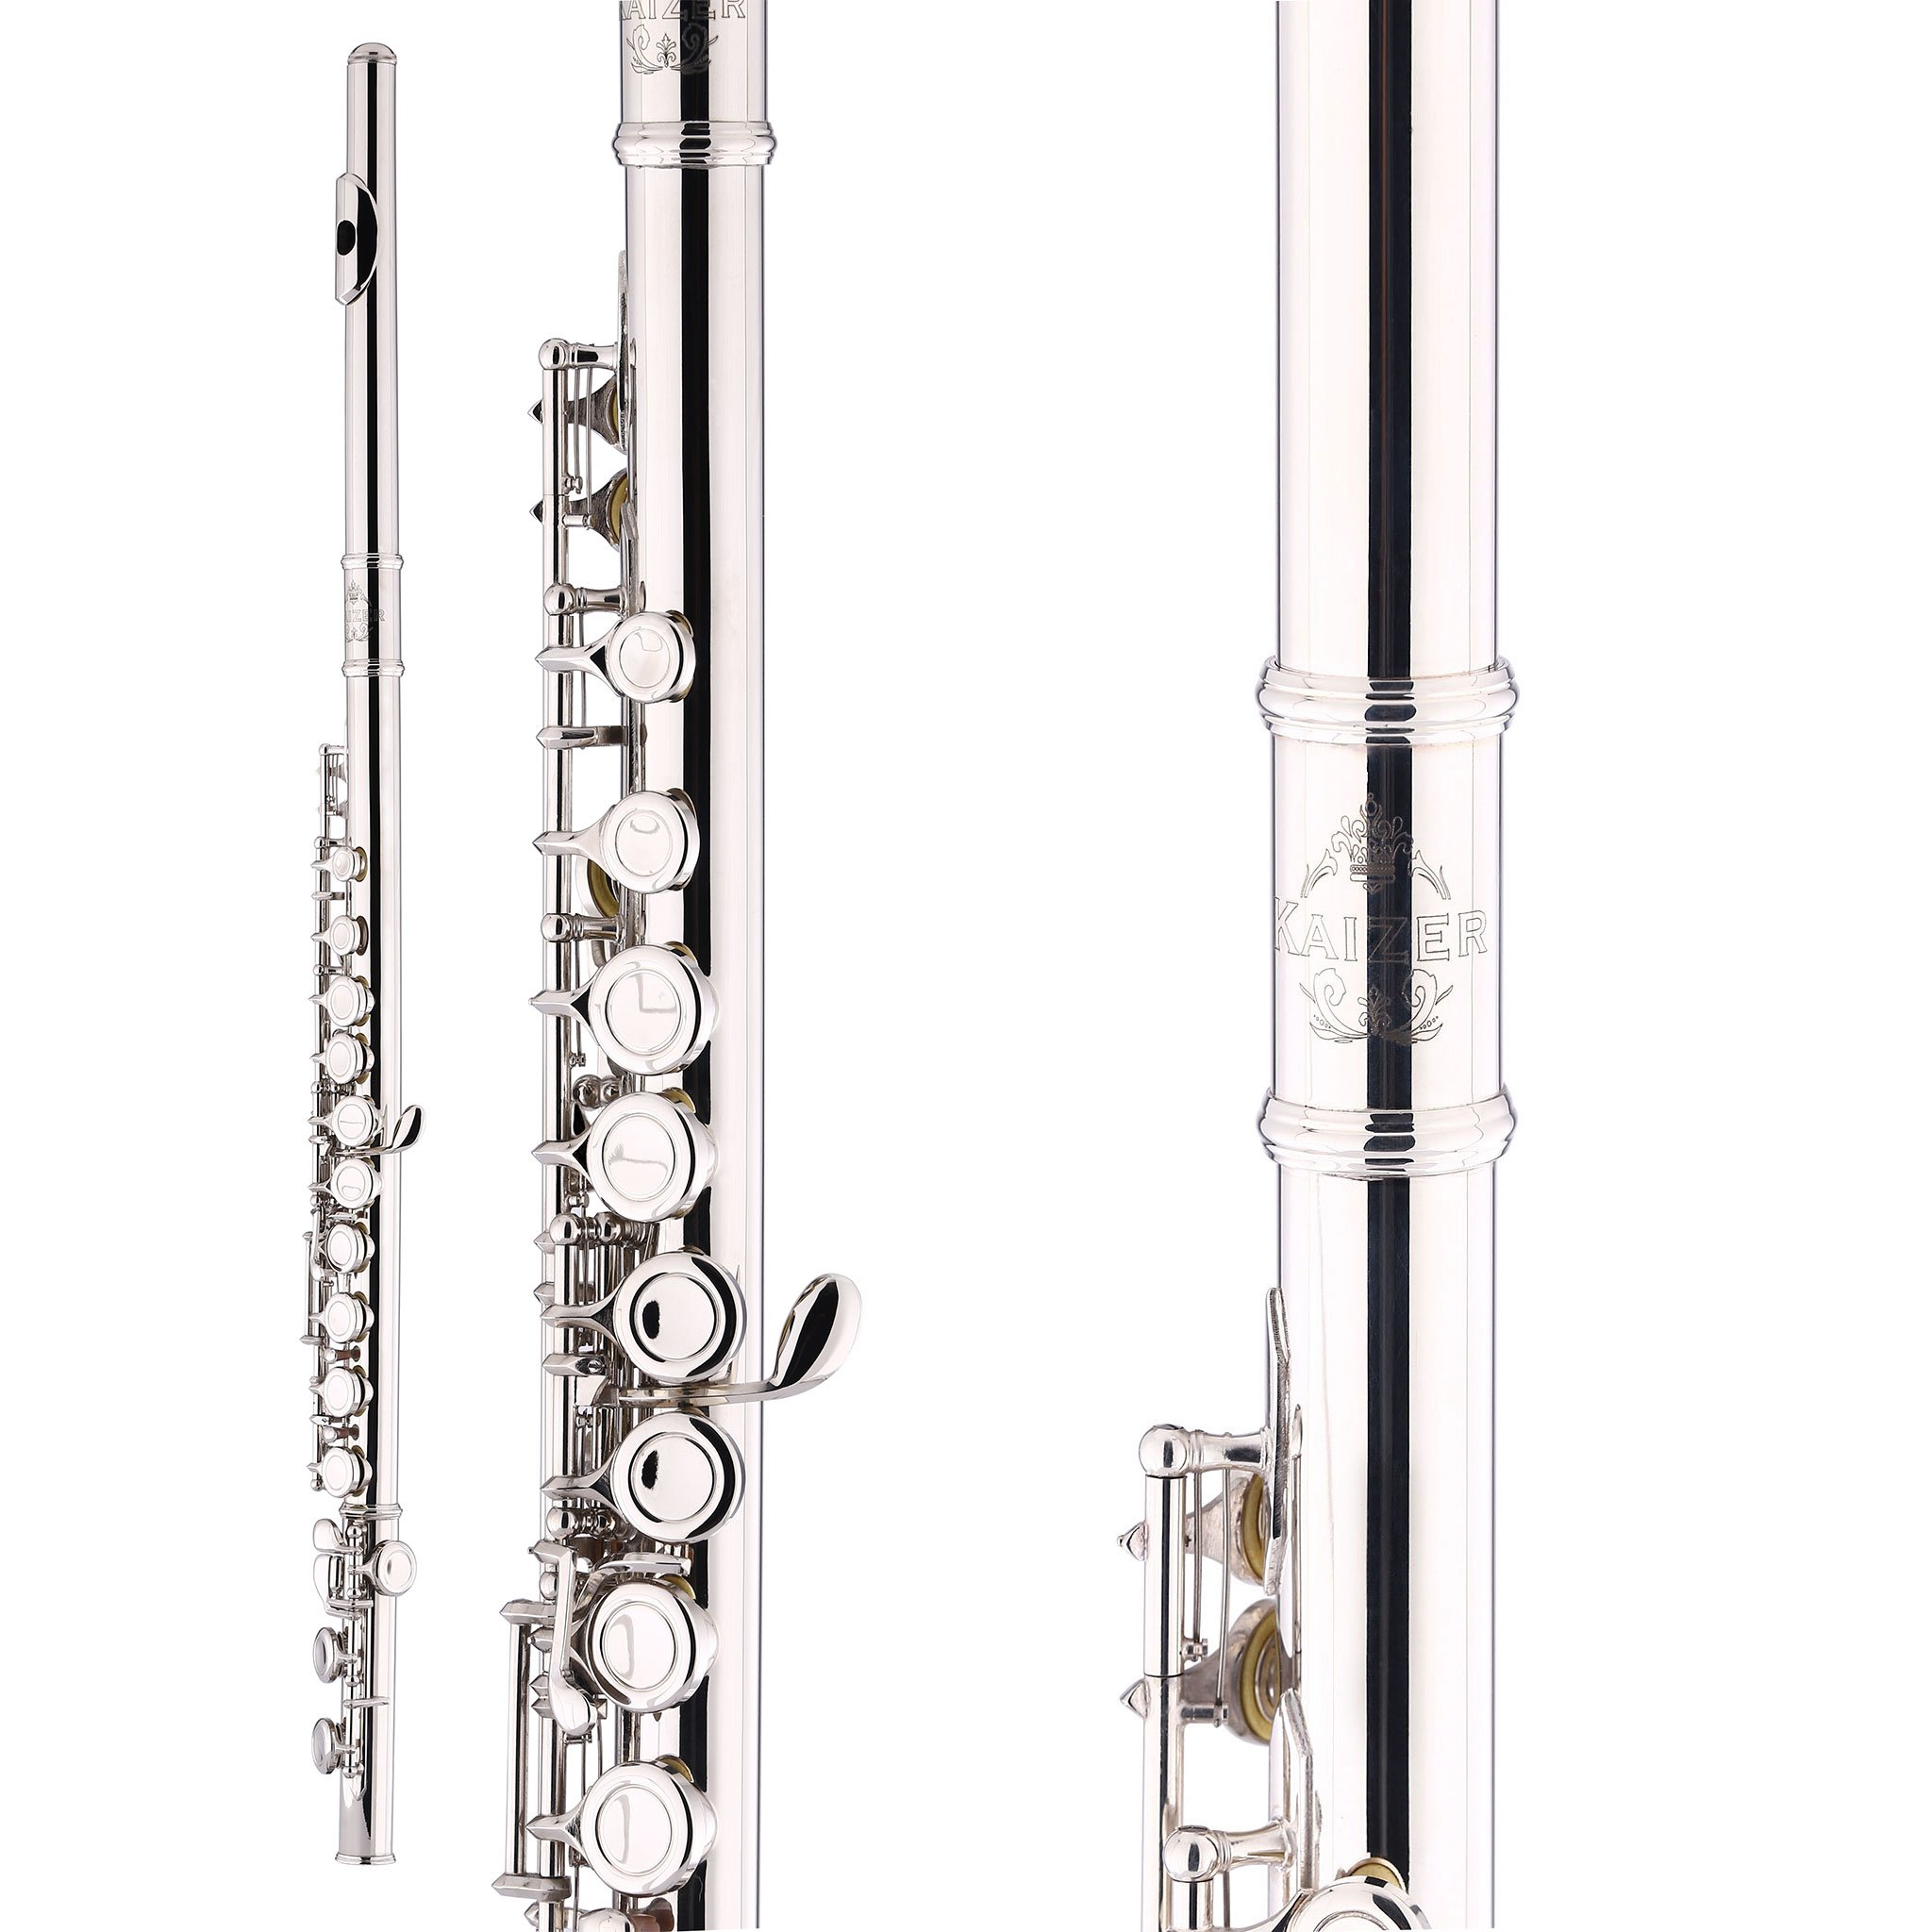 Kaizer Flute C Key 1000 Series Closed Hole Nickel Silver New 2018 Model Student Flute FLT-1500NK